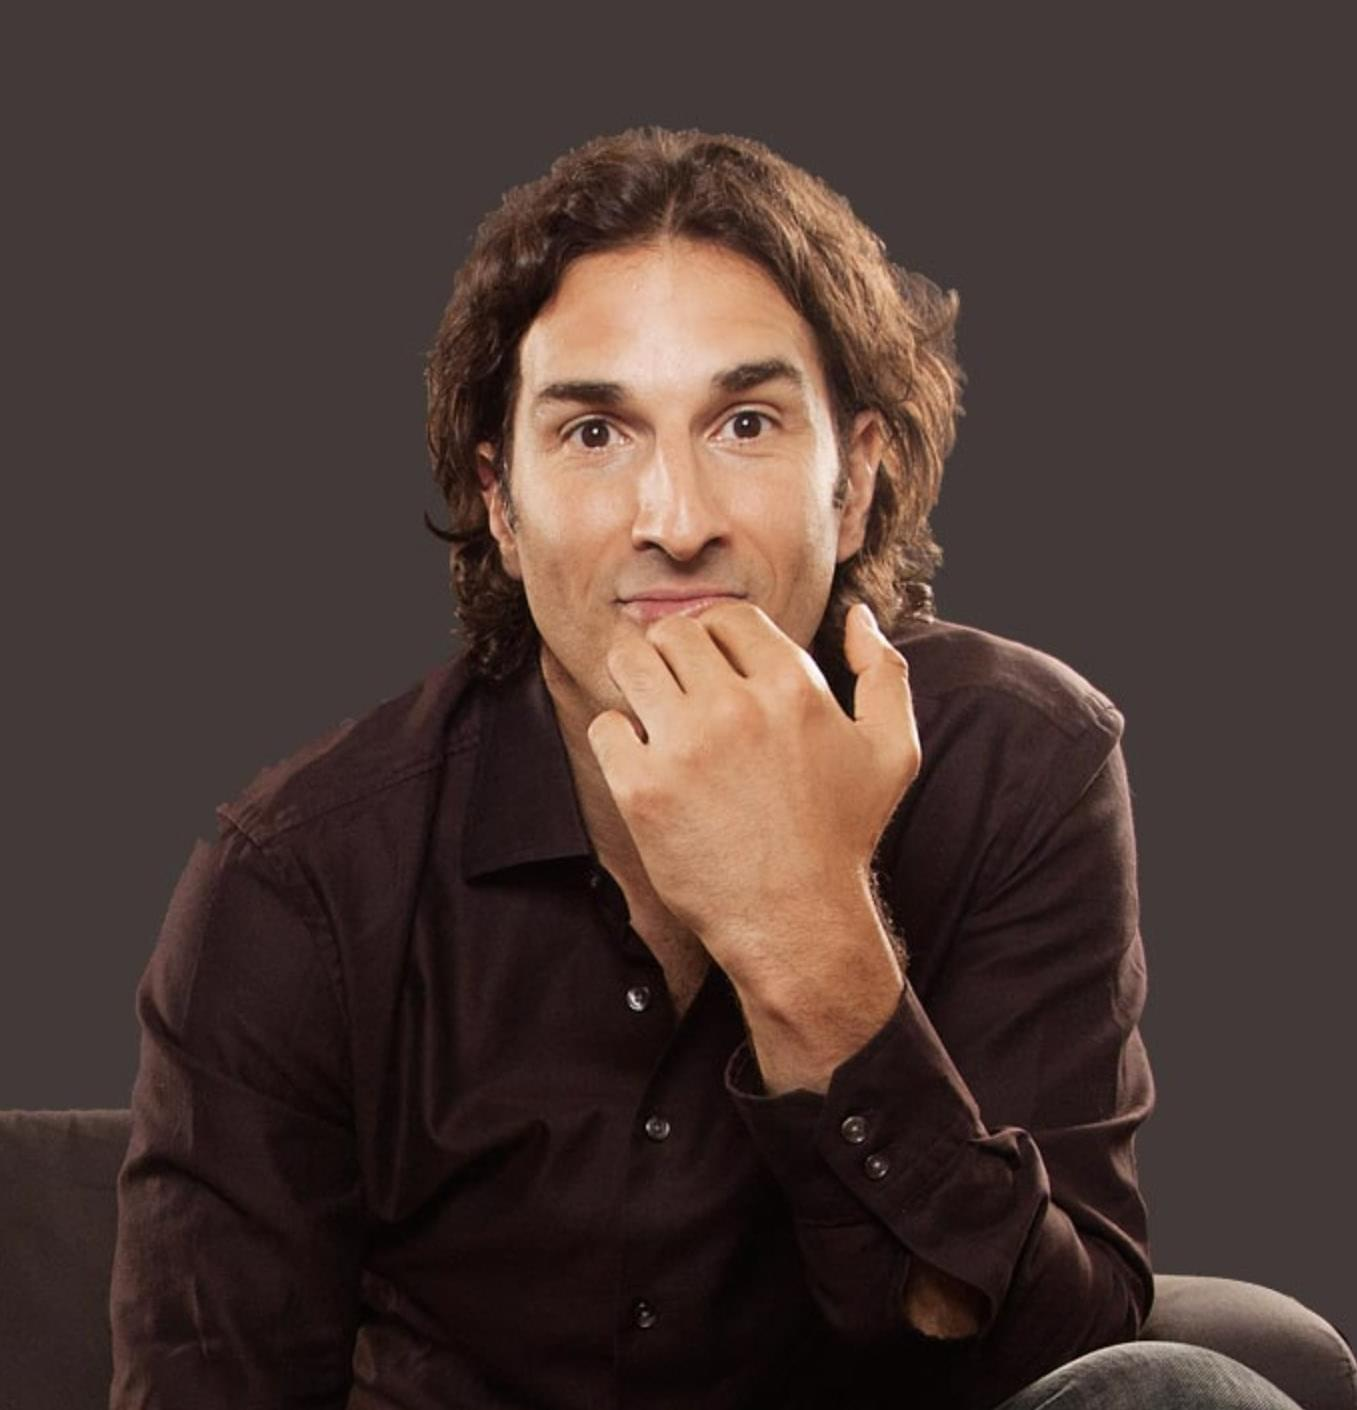 [AUDIO] Cameron talks to comedian GARY GULMAN